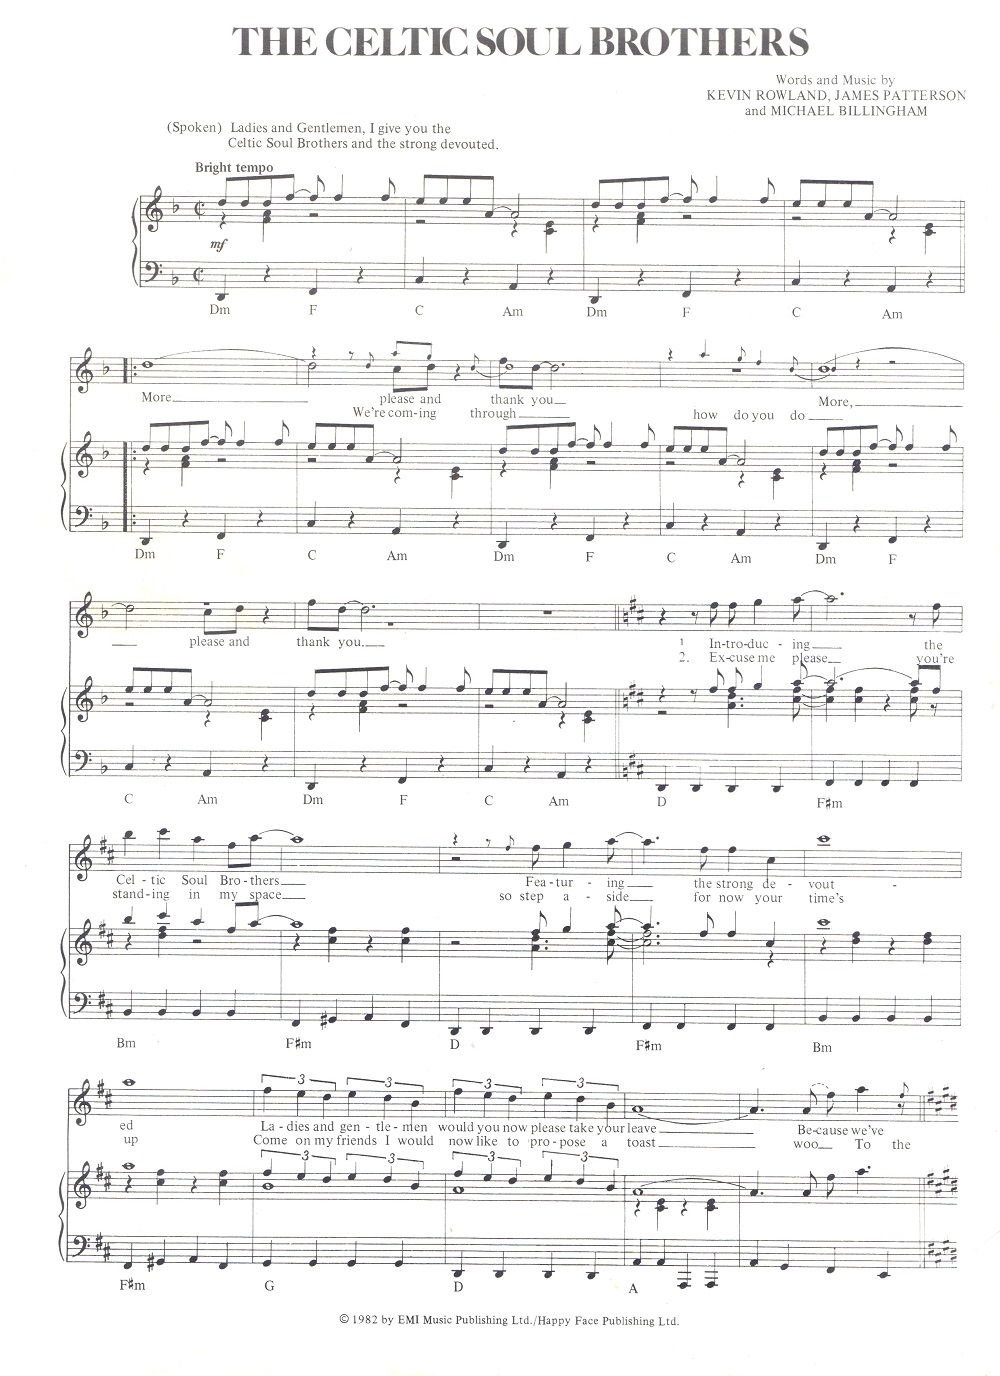 Celtic_Soul_Brothers_Sheet_Music_2.jpg